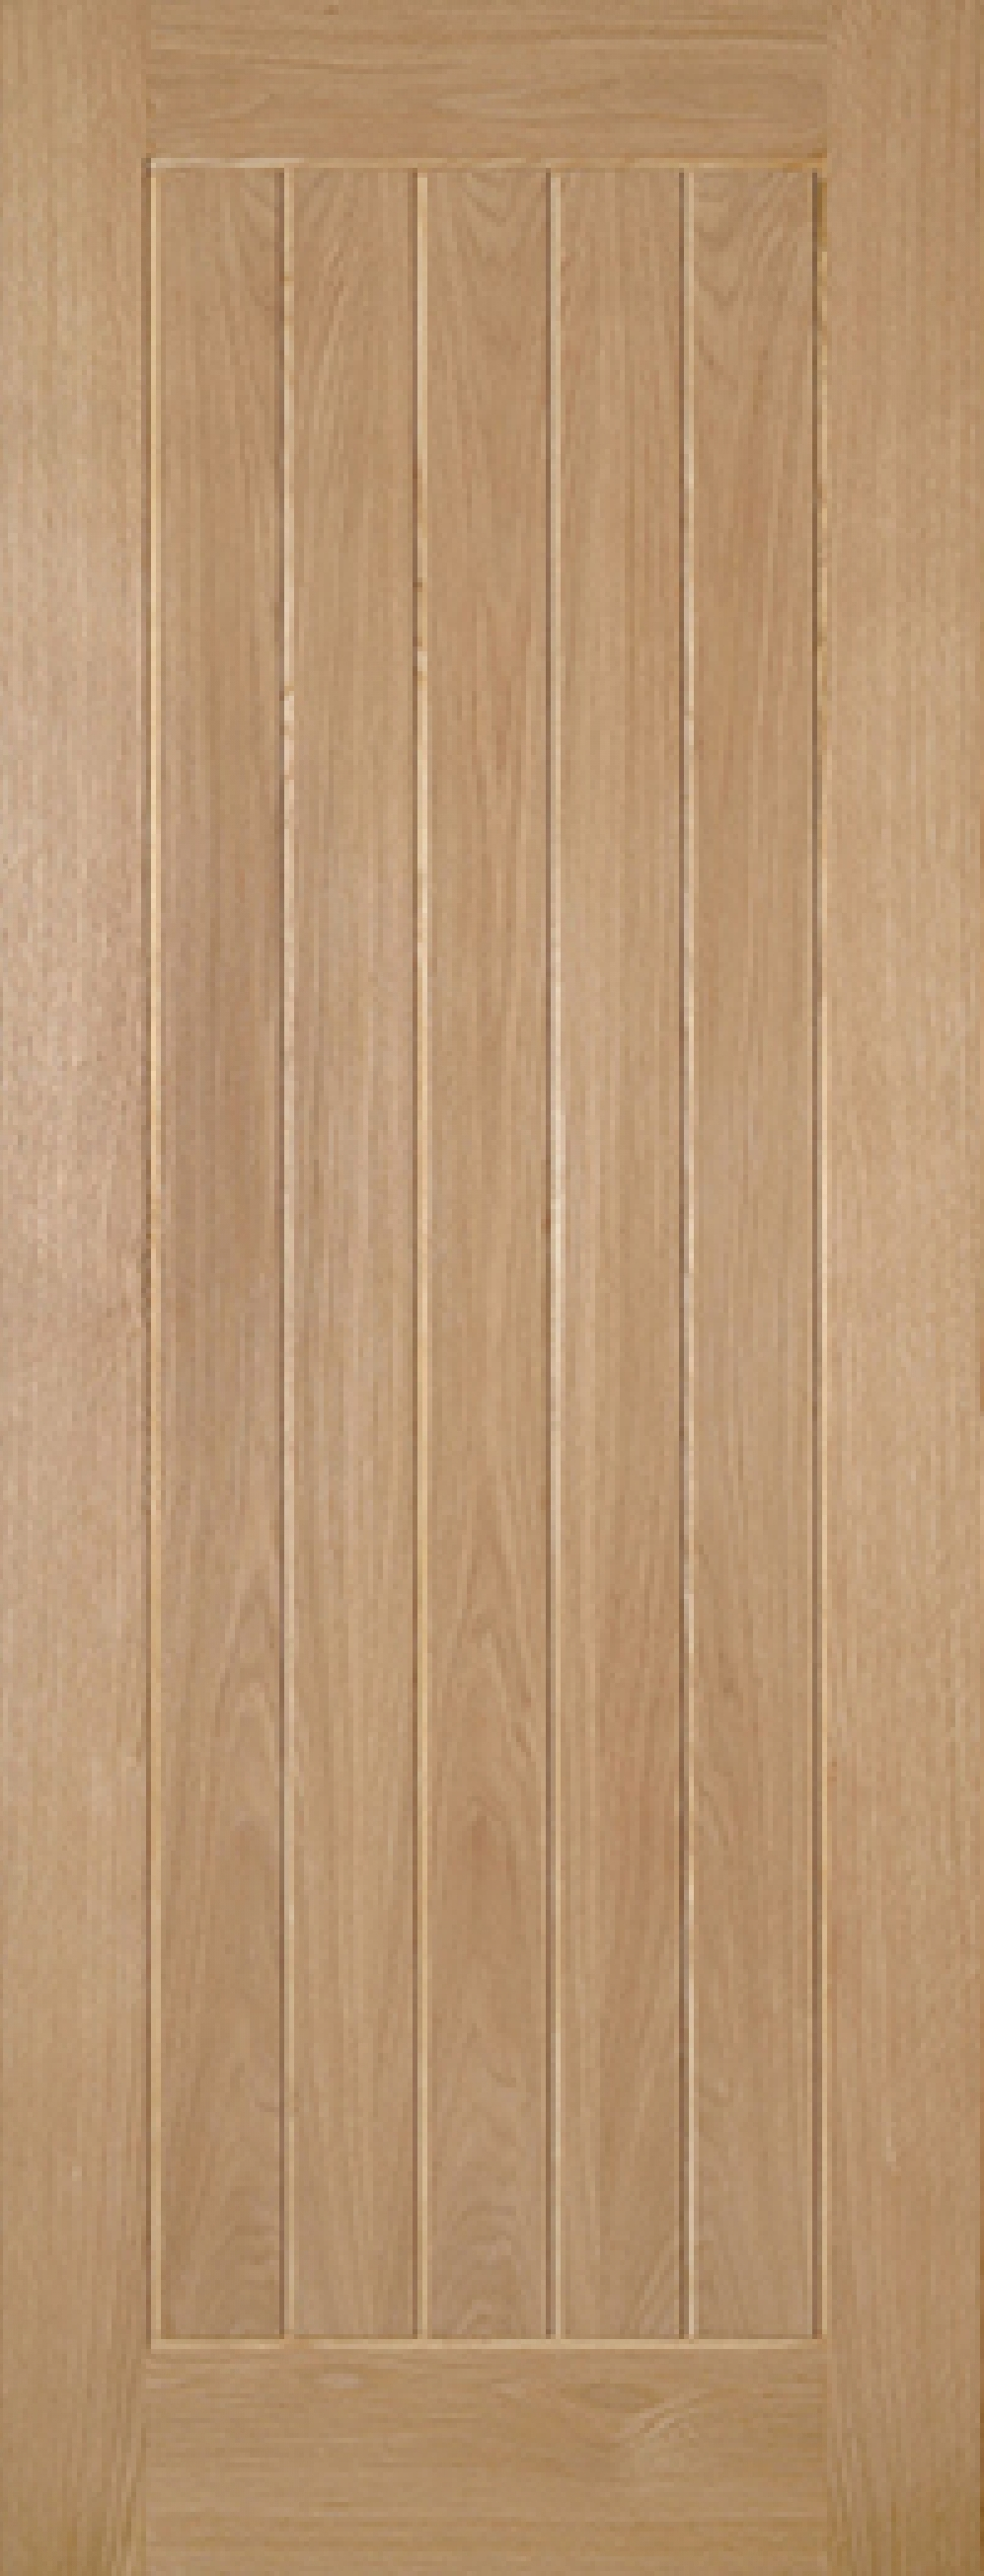 Ordinaire Ely Oak Door   Prefinished